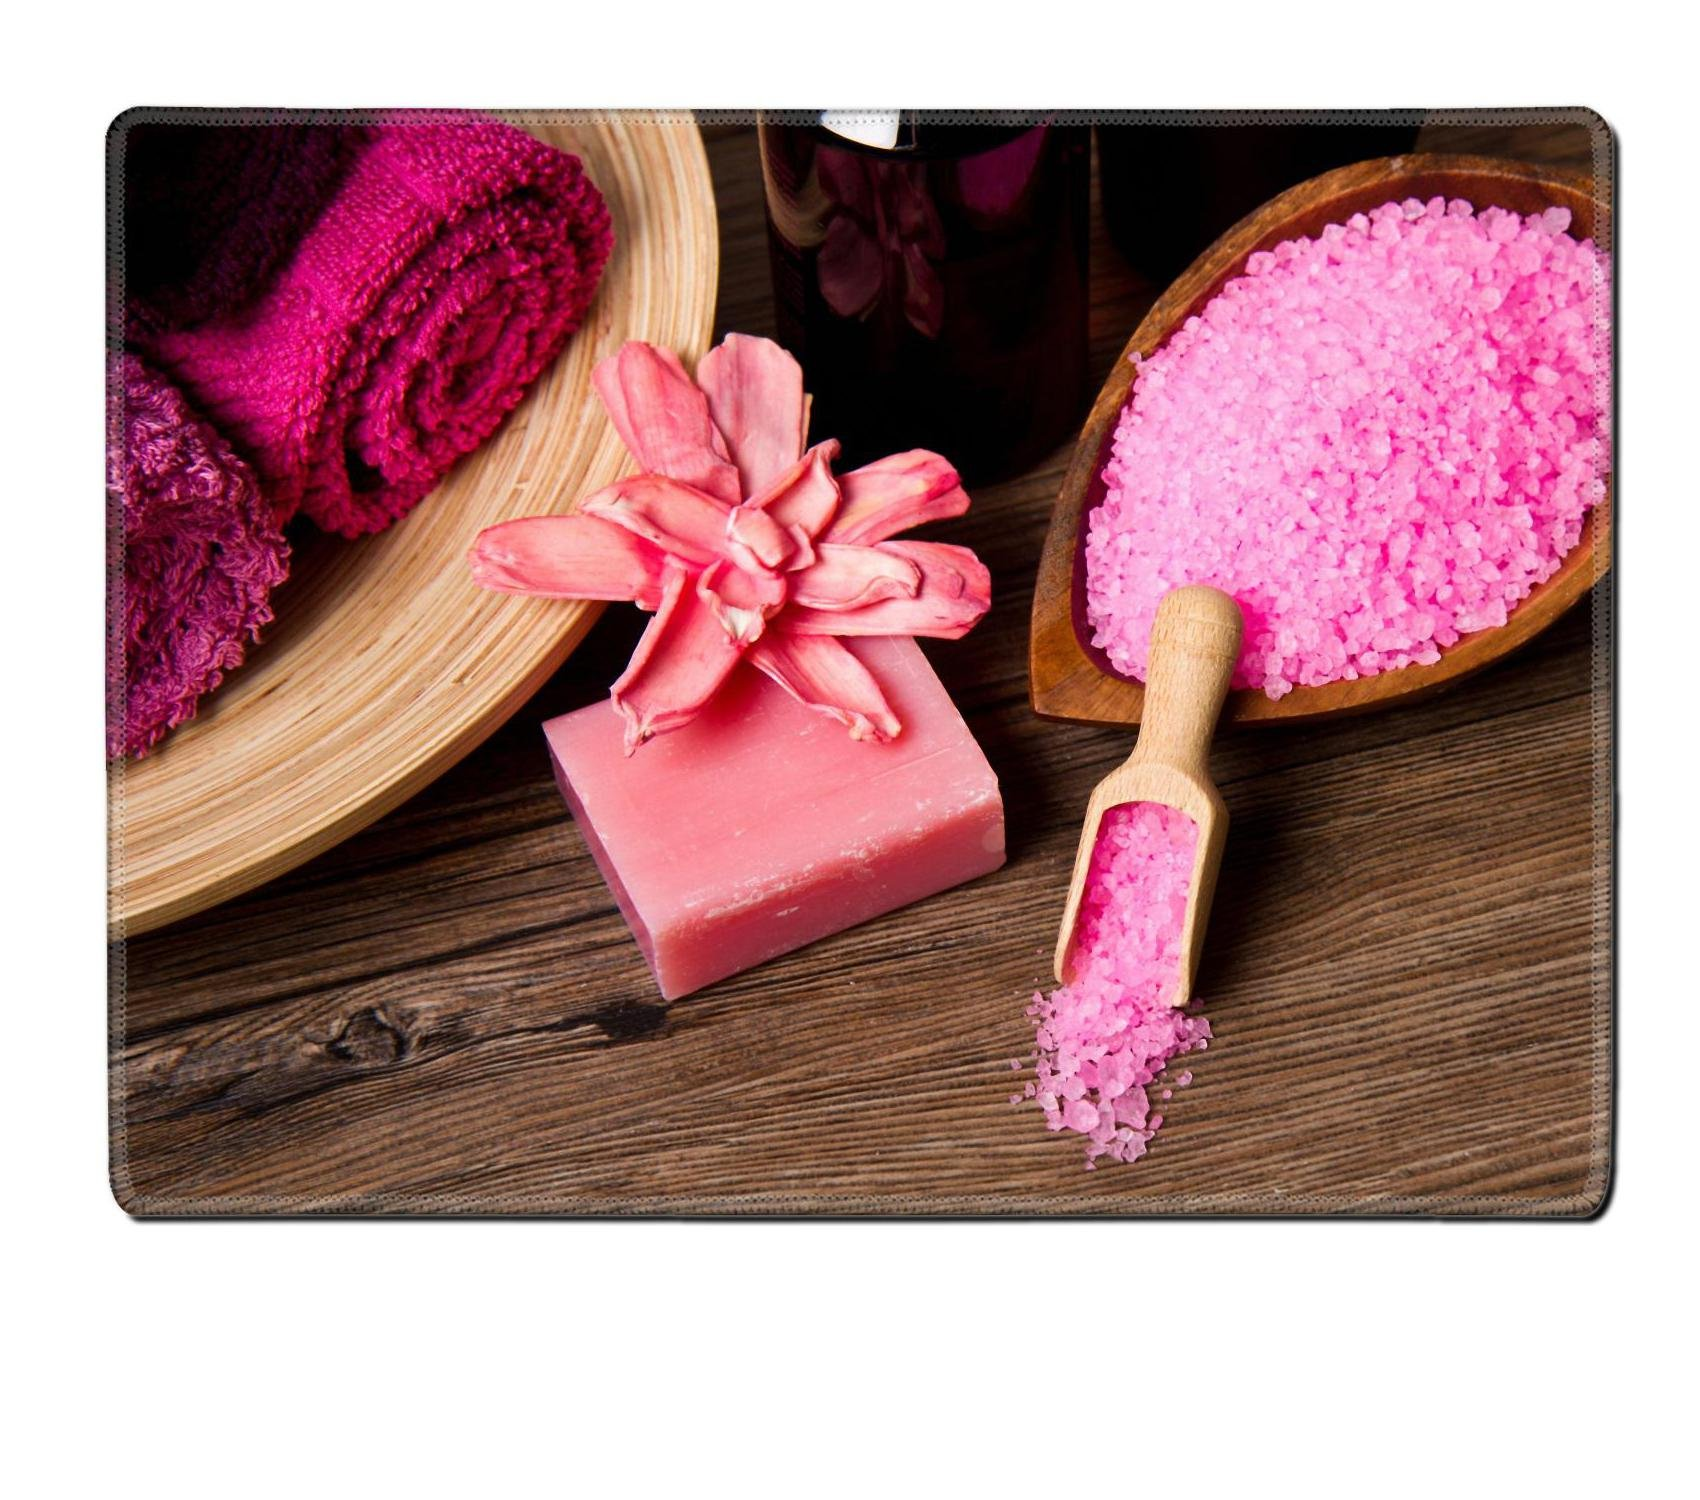 MSD Placemat Non-Slip Natural Rubber Desk Pads Place-mats Design 23908738 Pink Spa Tools with Candle AMD Towel on Wood by MSD (Image #2)